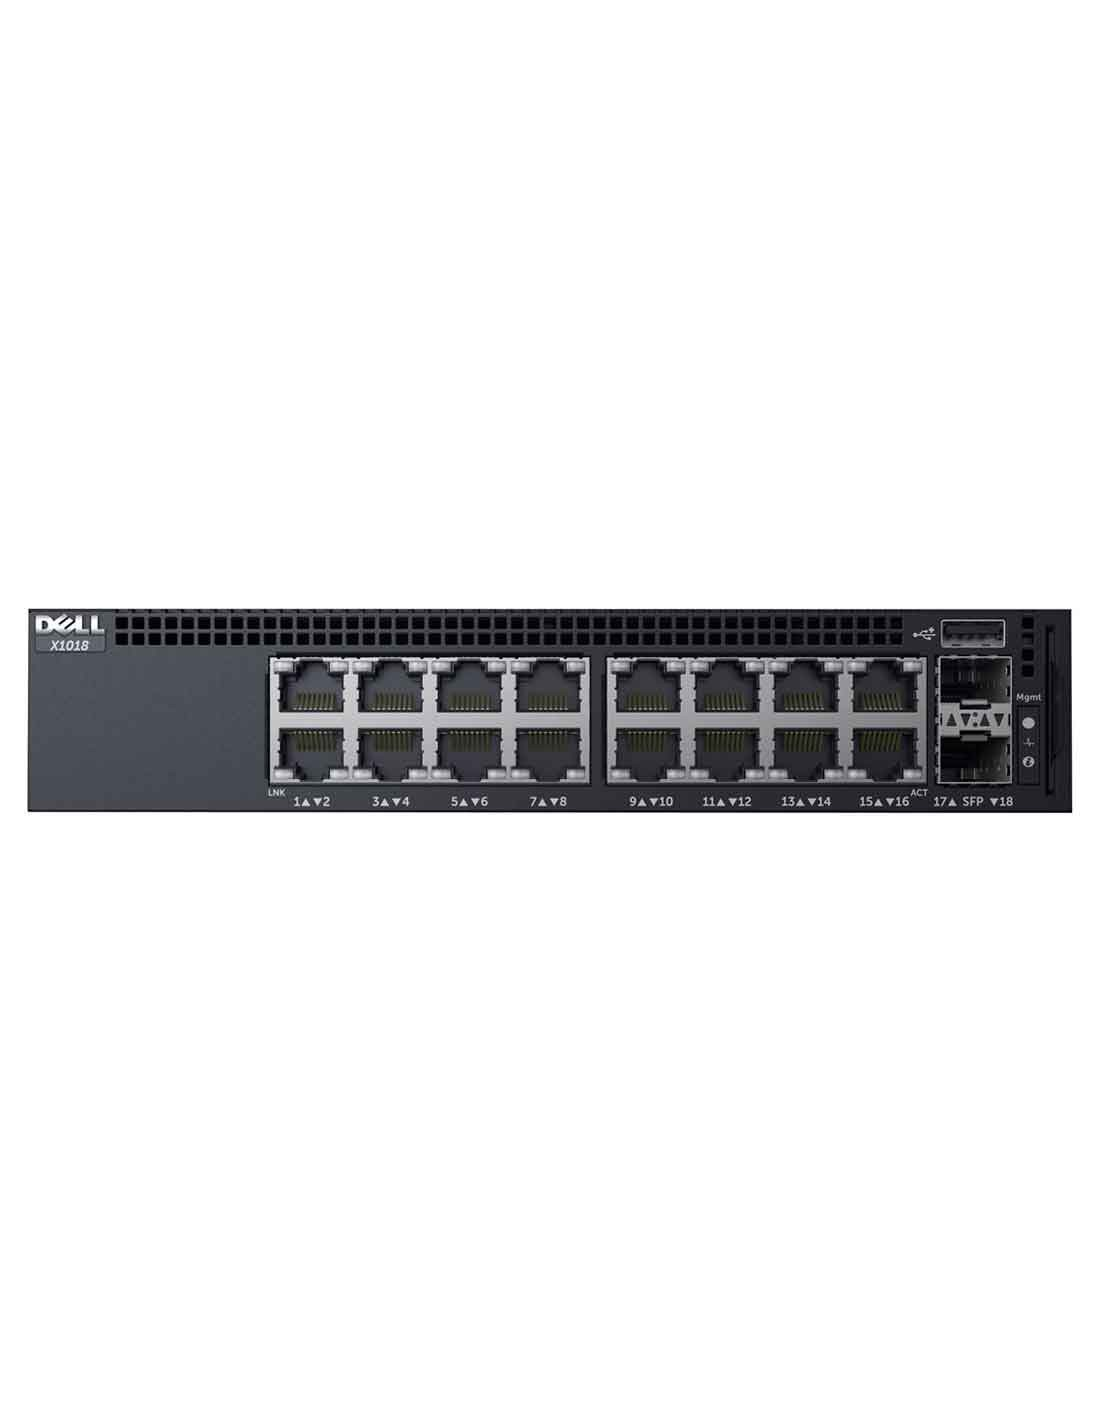 Dell Networking X1018P Managed Switch at a cheap price and fast free delivery in Dubai UAE